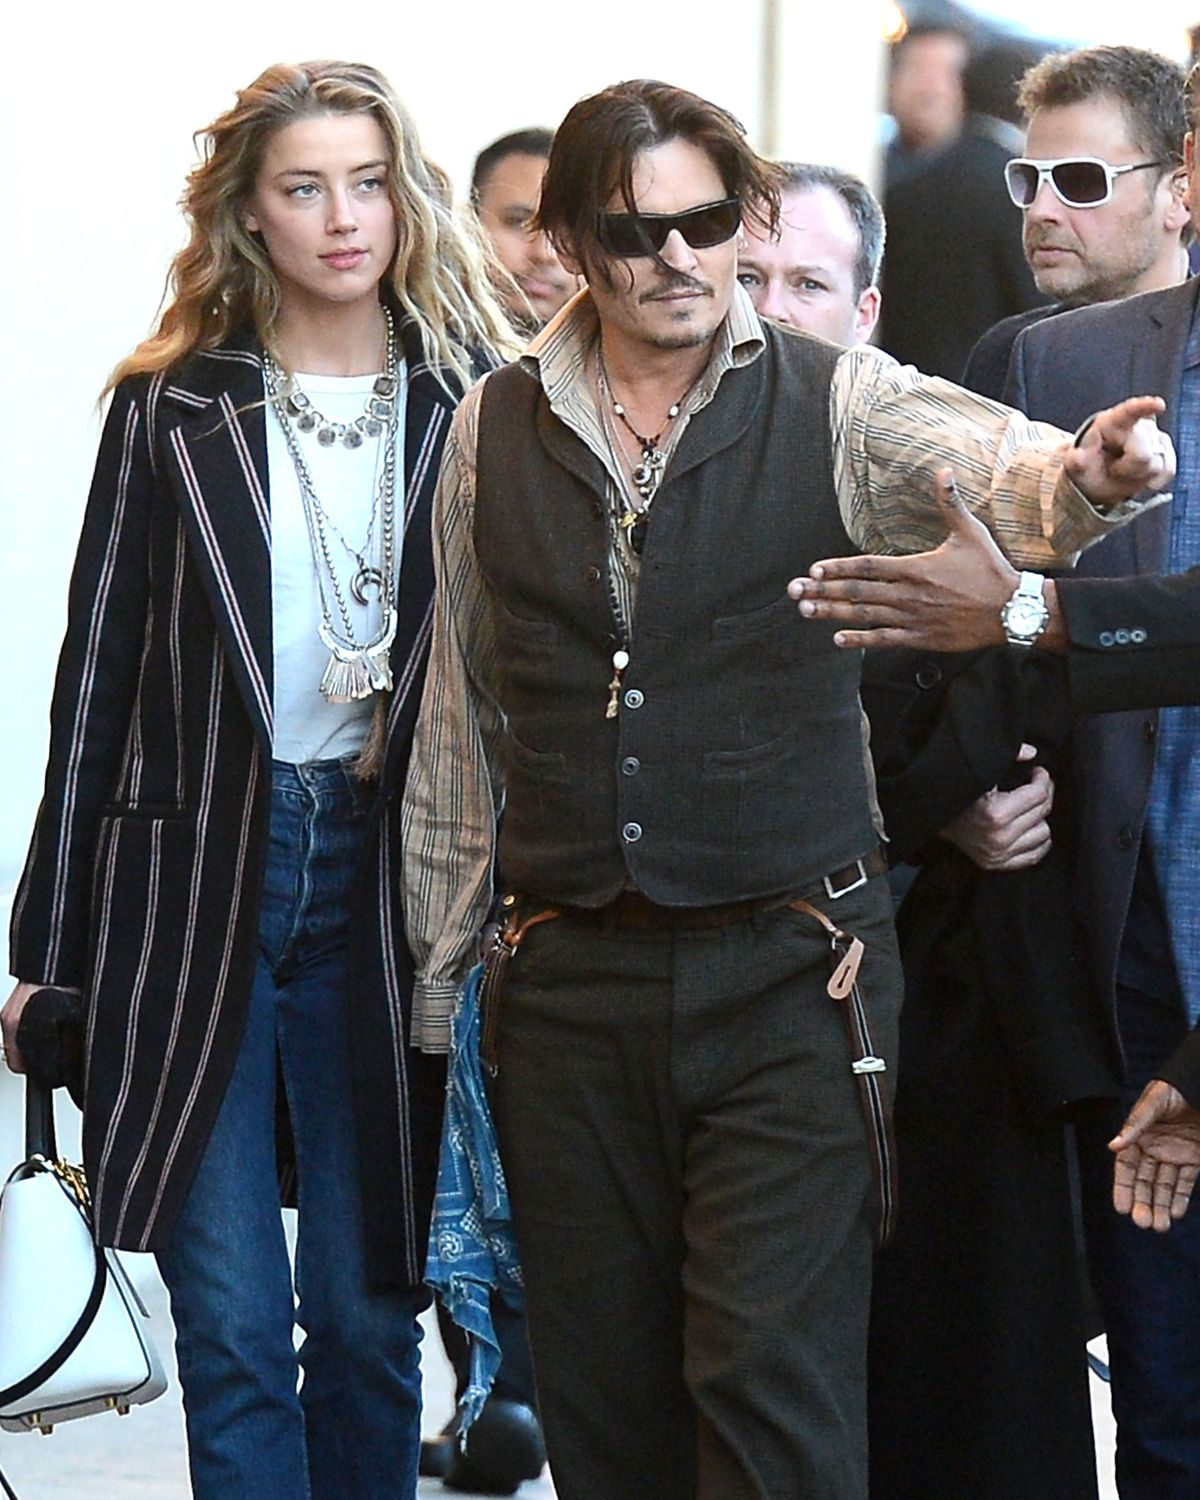 http://www.hawtcelebs.com/wp-content/uploads/2015/01/amber-heard-and-johnny-depp-arrives-at-jimmy-kimmel-live_1.jpg